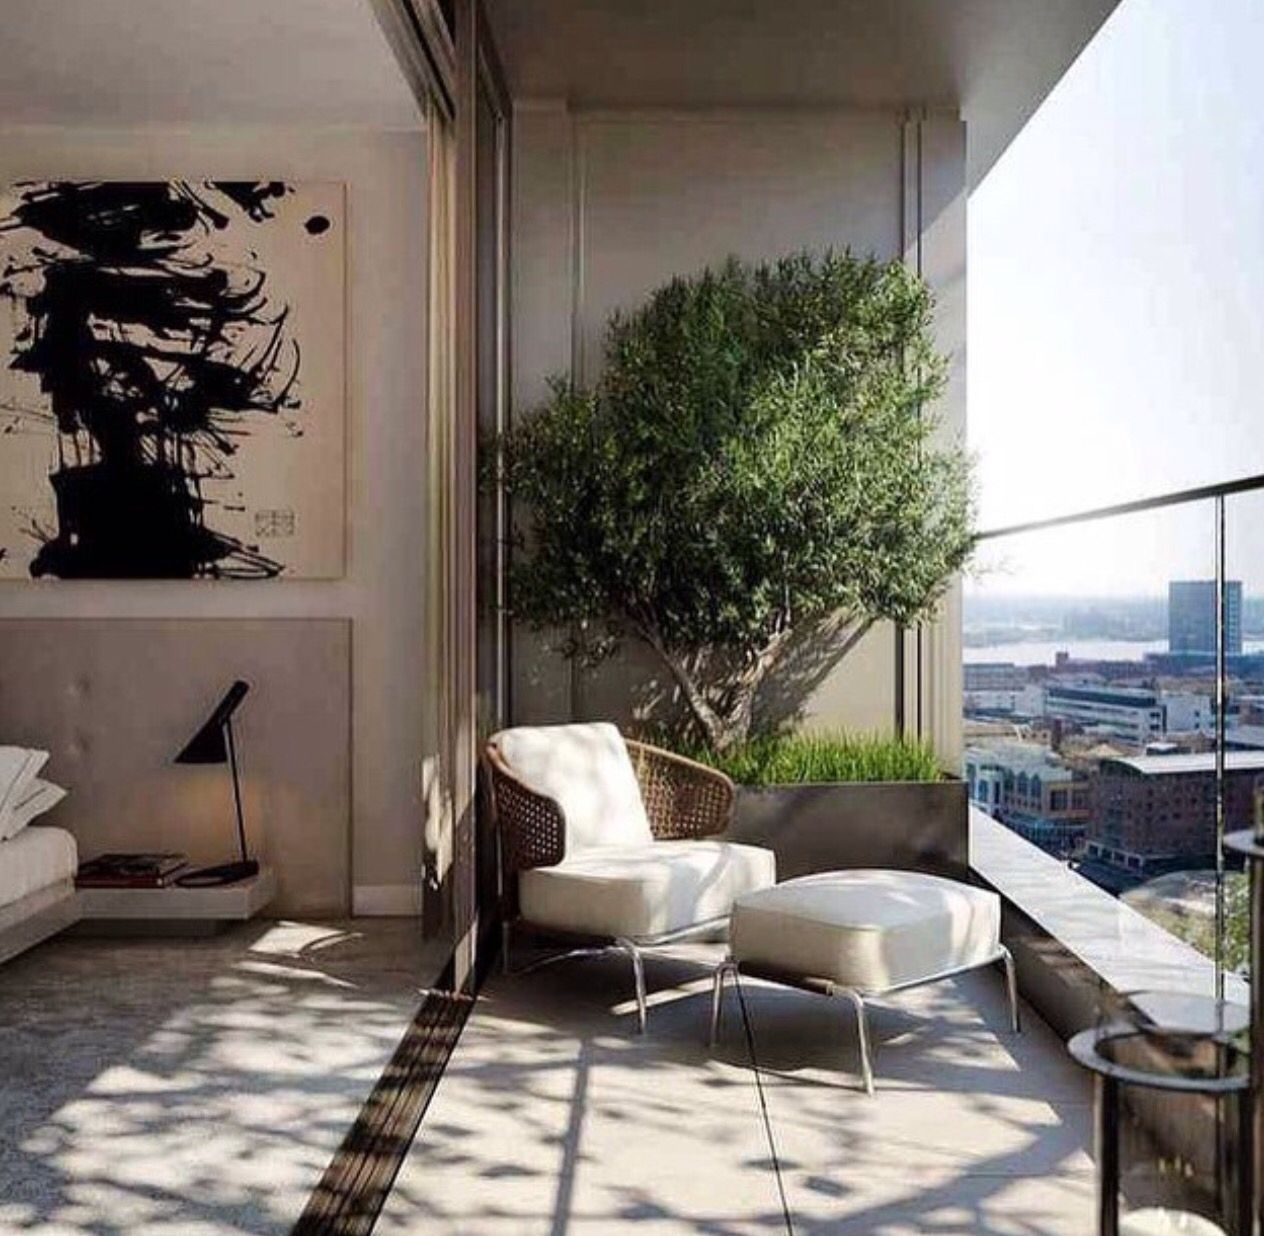 Urban garden planting trough w tree on city view Indoor outdoor interior design